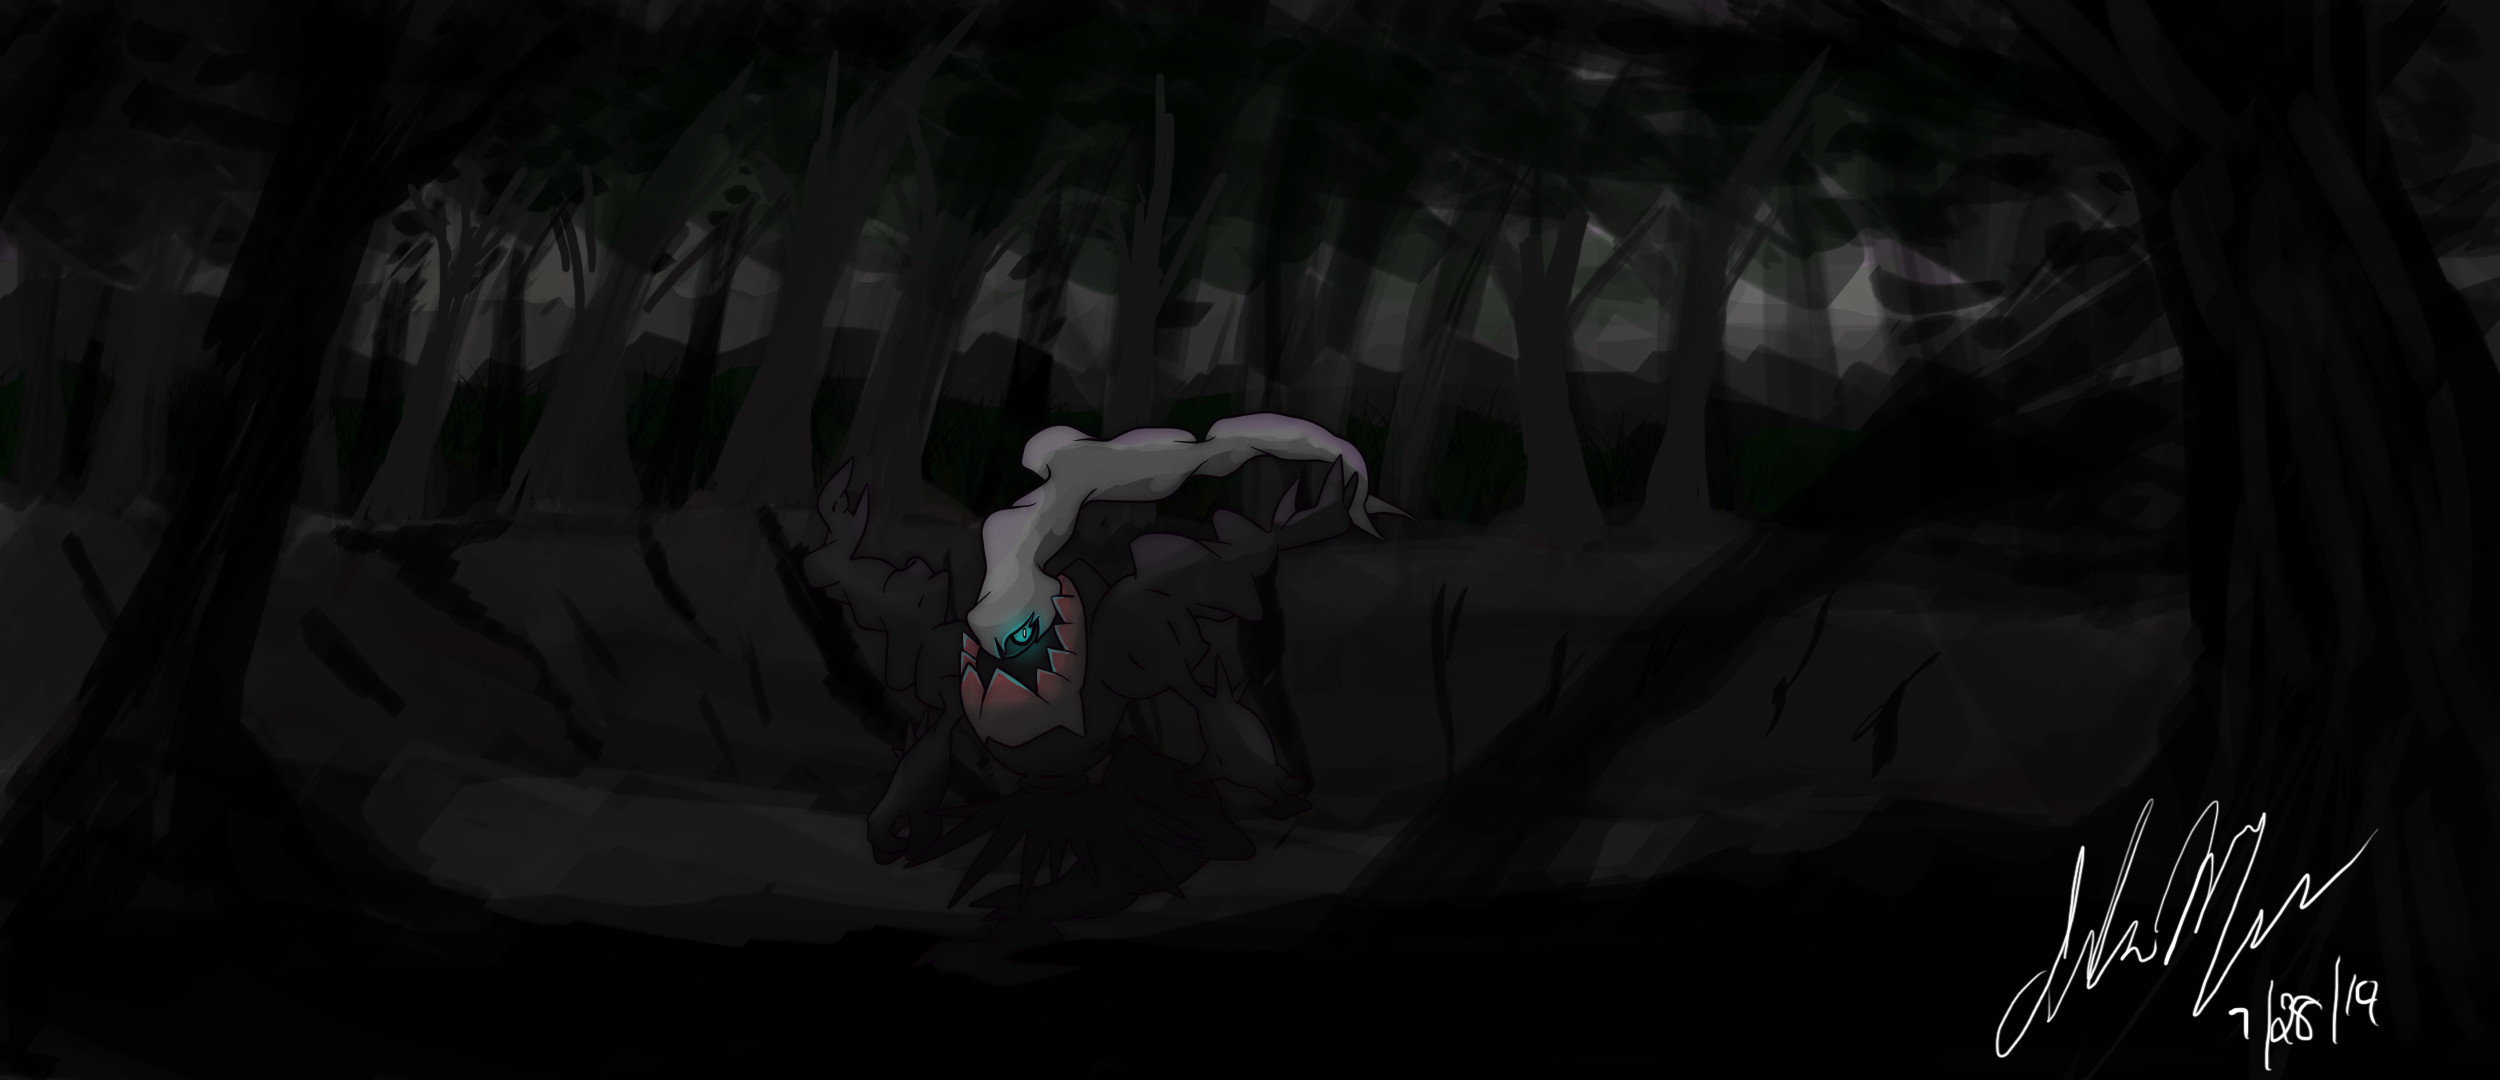 2500x1080 Darkrai on Newmoon Island by SonicX908 Darkrai on Newmoon Island by  SonicX908